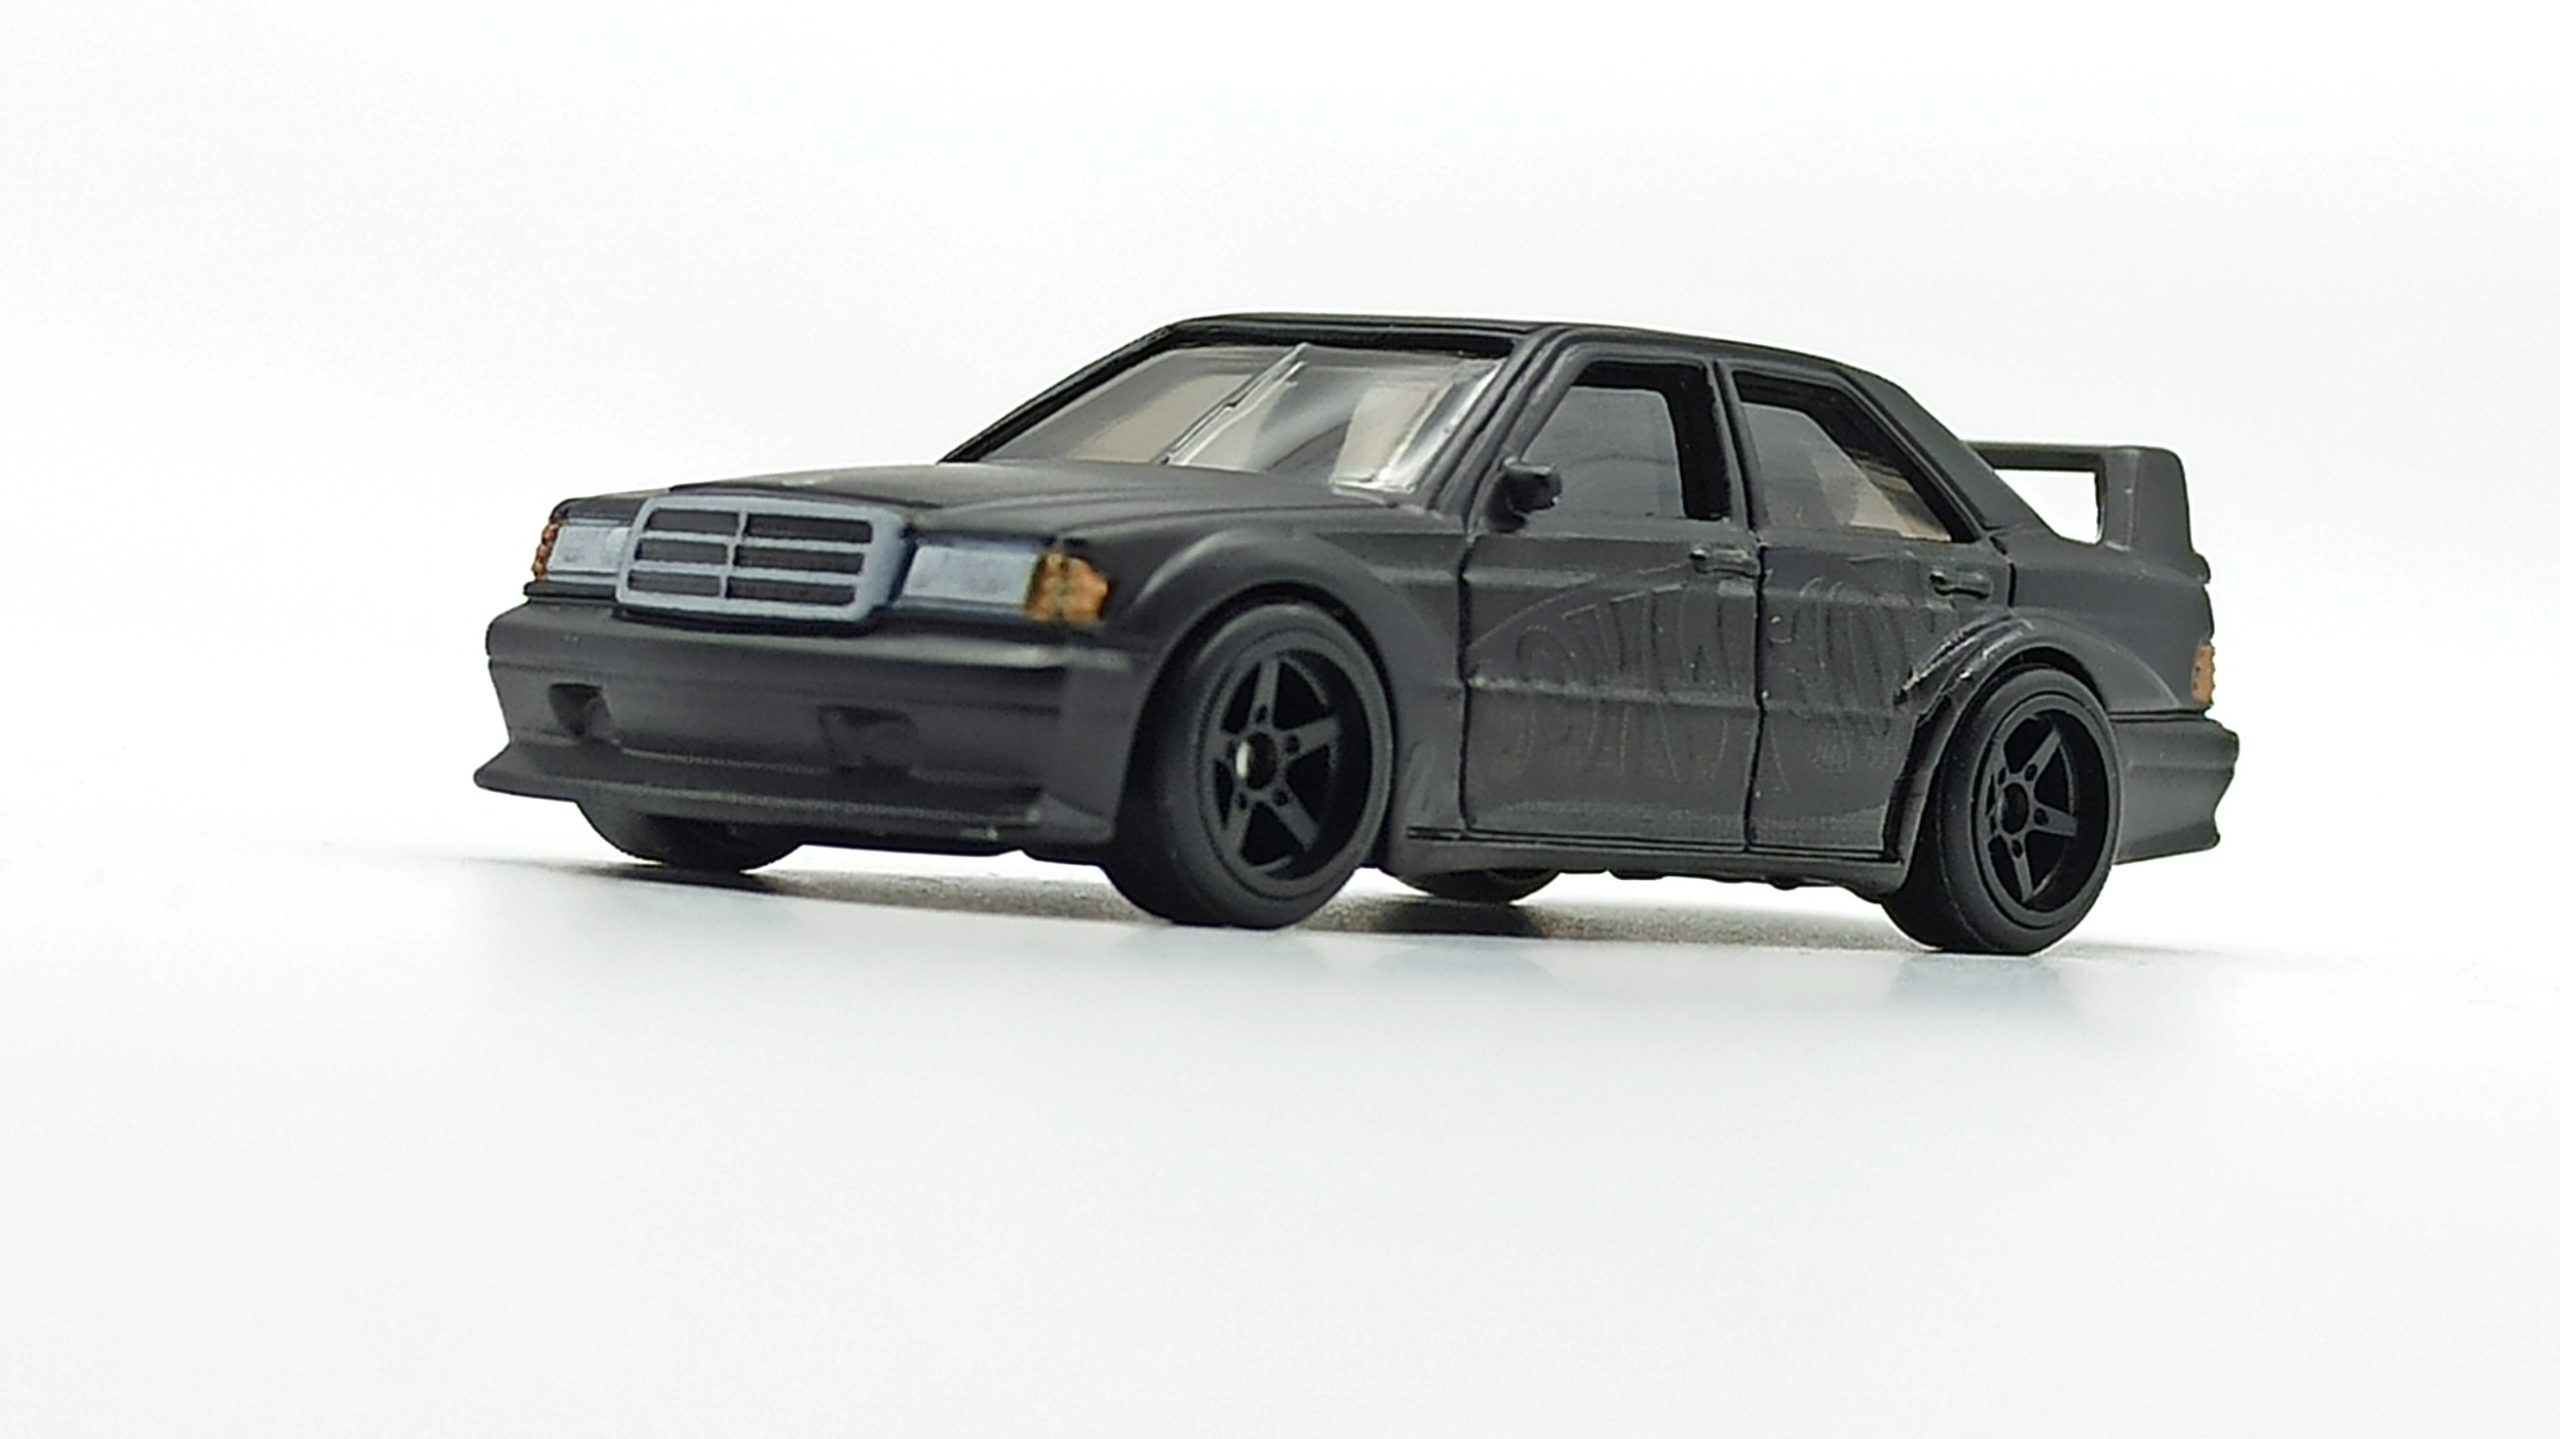 Hot Wheels Mercedes-Benz 190E 2.5-16 EVO II (DWH66) 2021 Display Case Exclusive black front angle